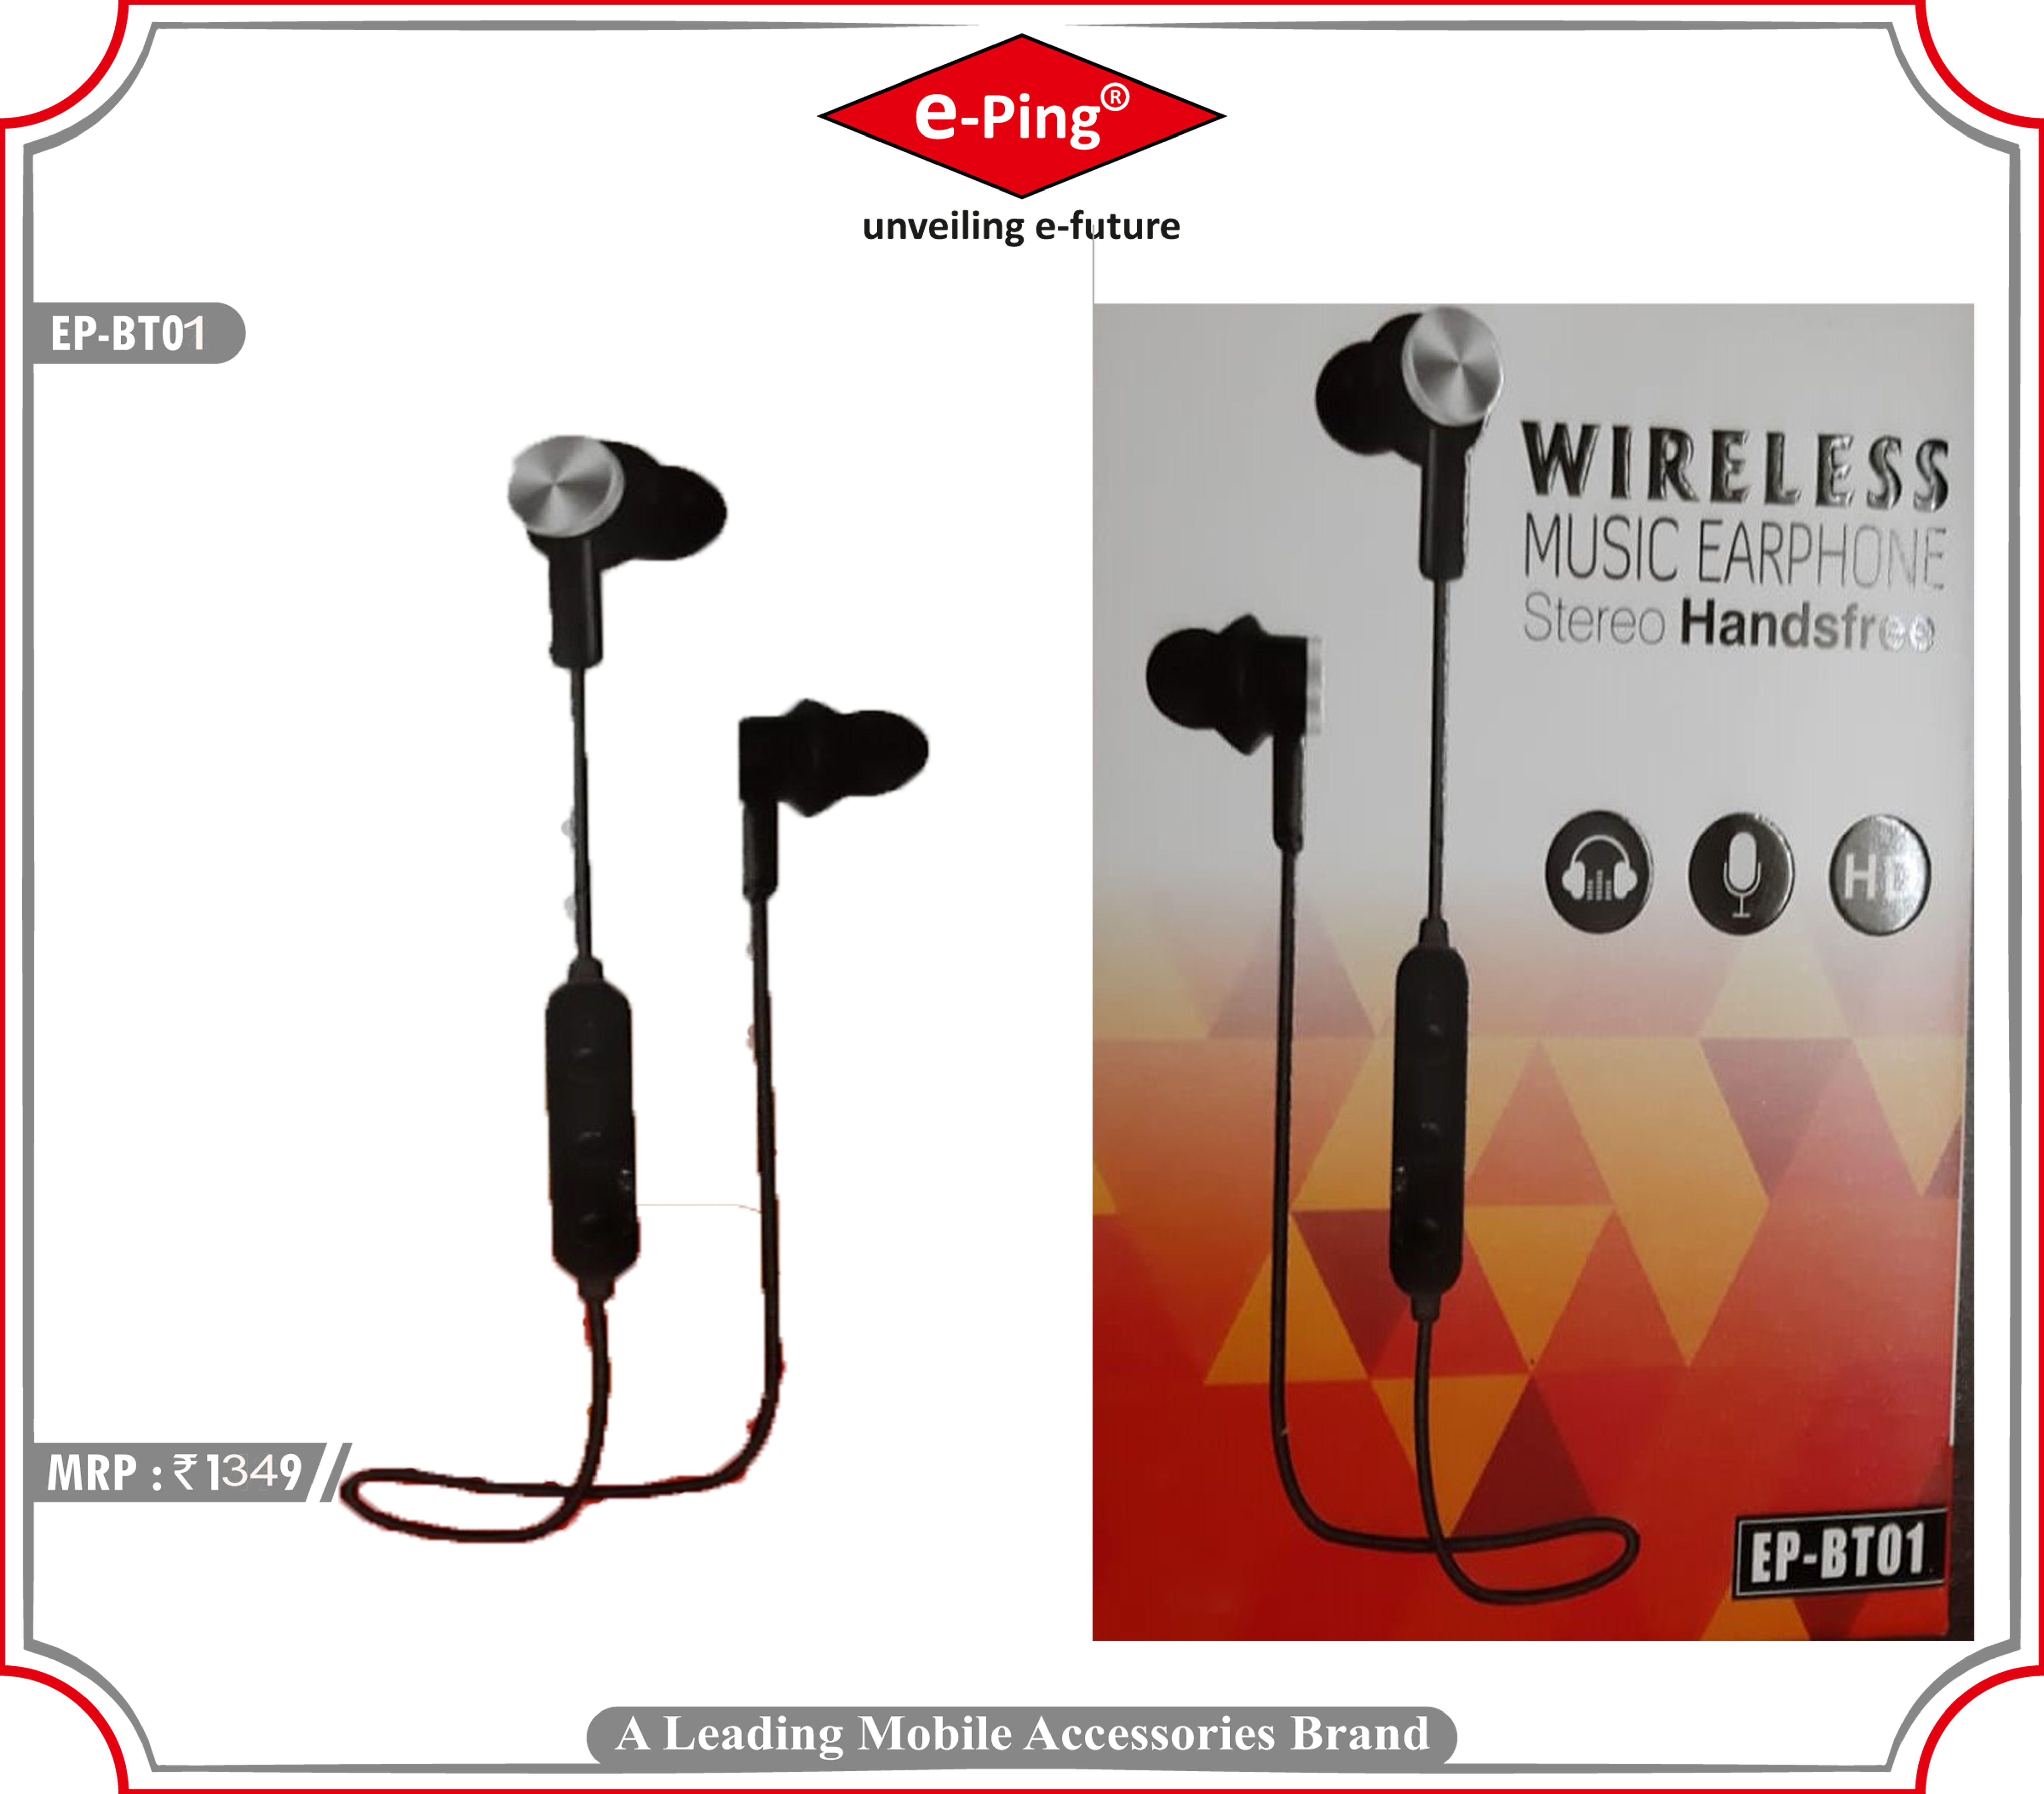 Wireless Music Earphone Stereo hendsfree